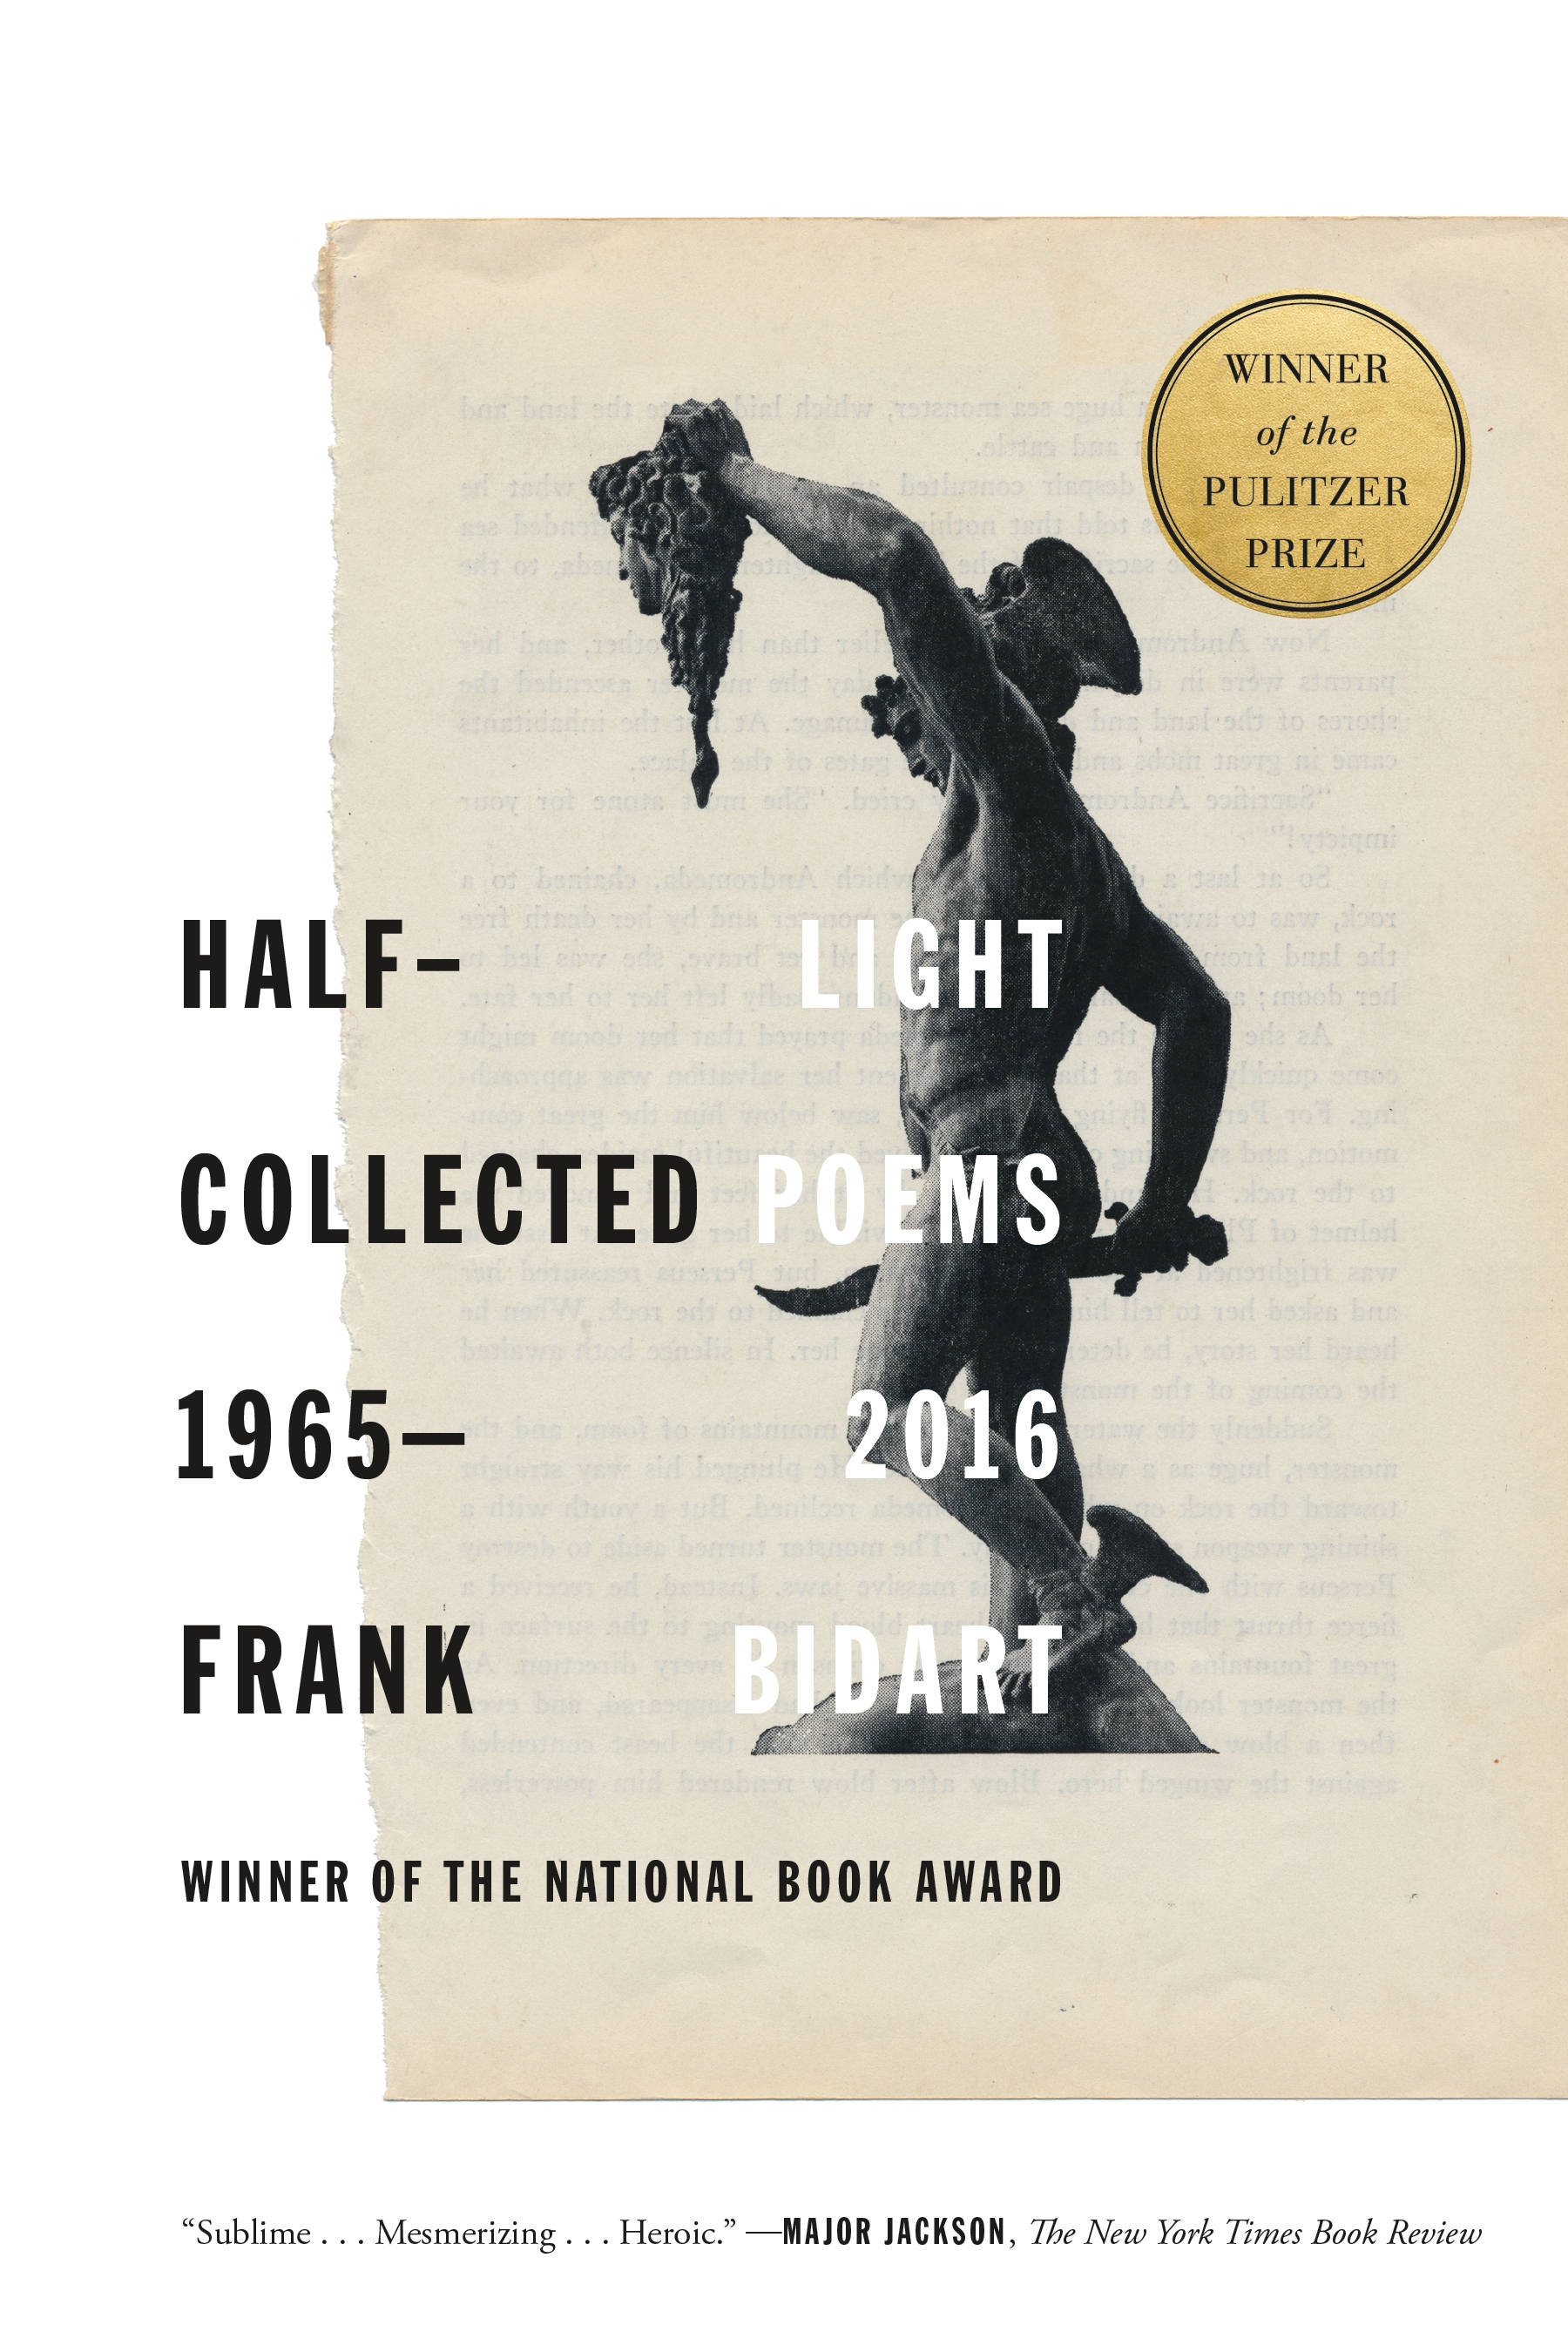 Half-light [eBook] : collected poems 1965-2016